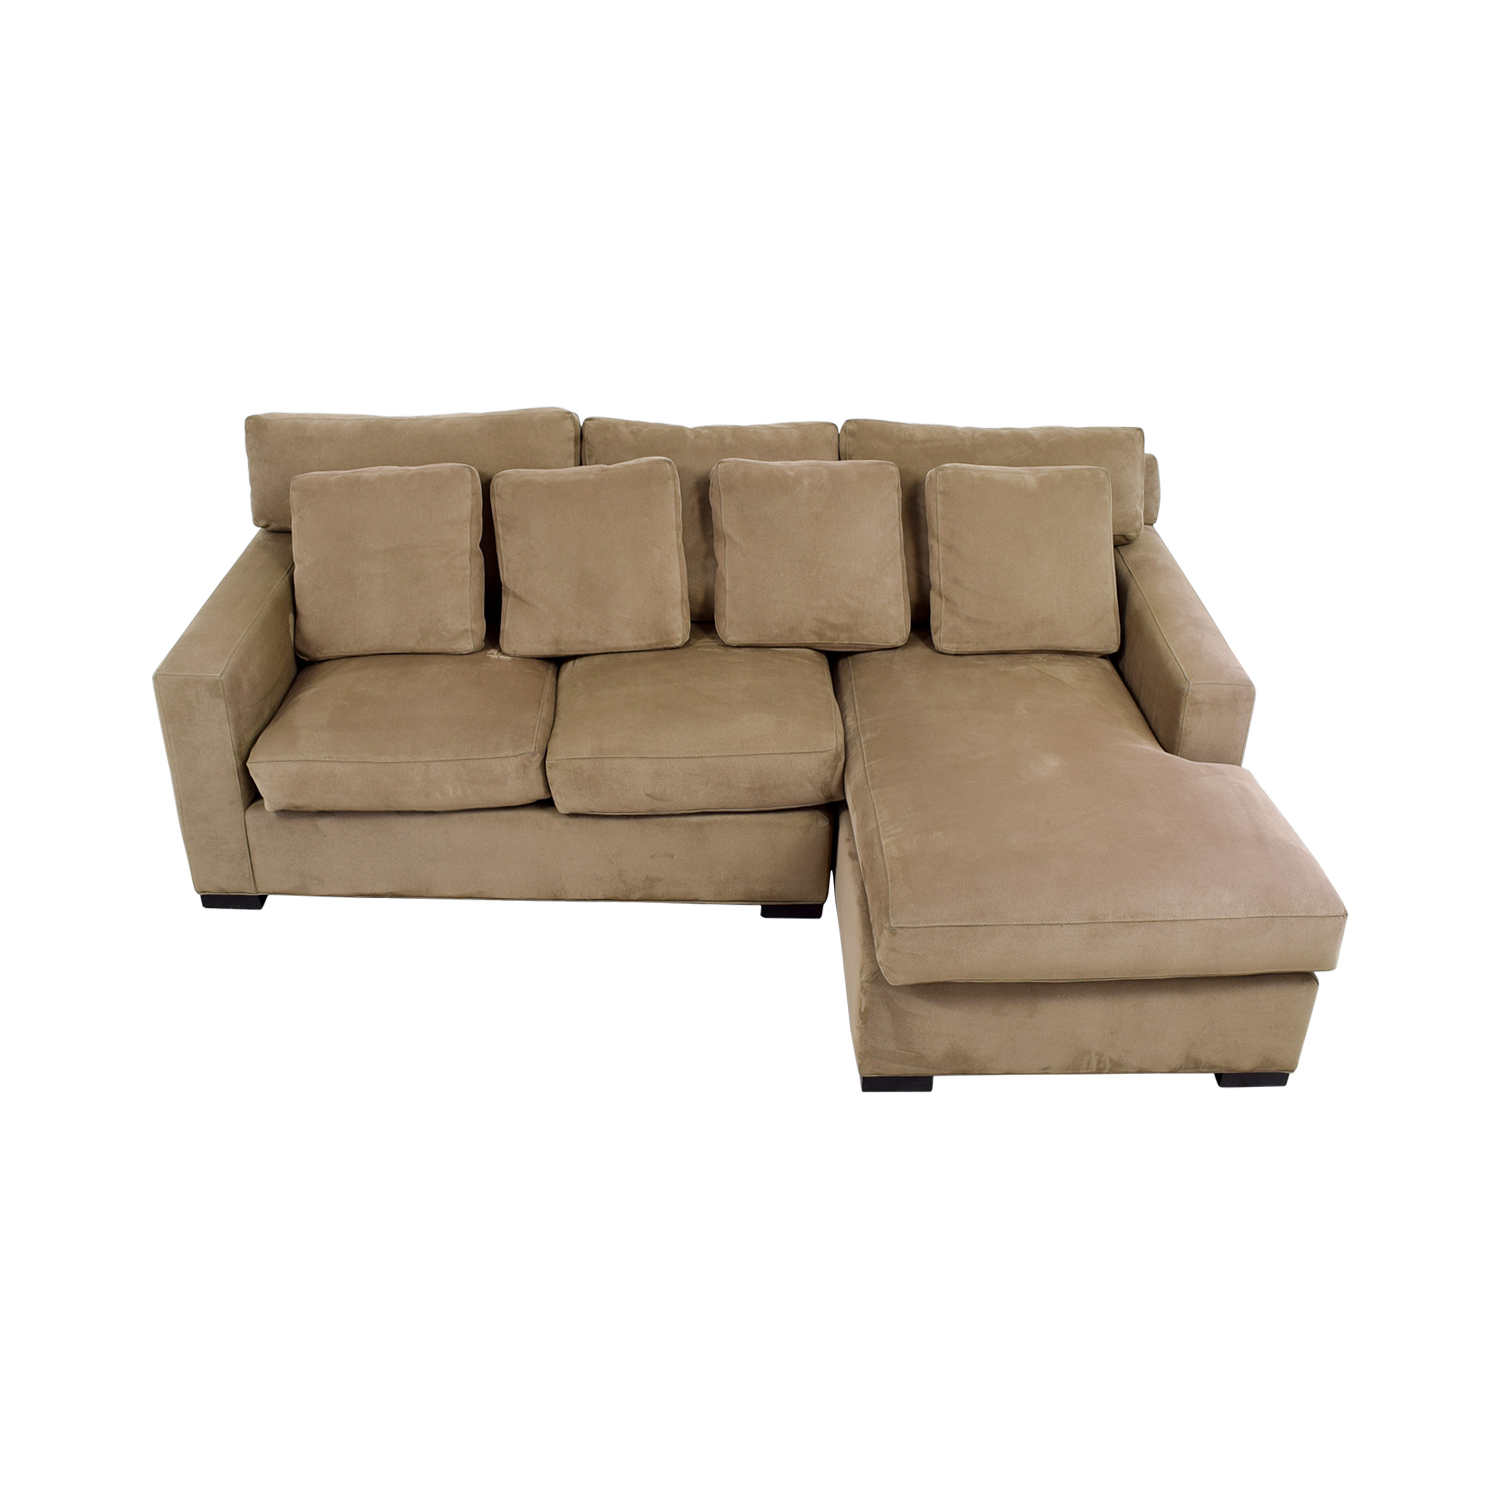 Crate & Barrel Axis Tan Right Arm Chaise Lounge / Sectionals